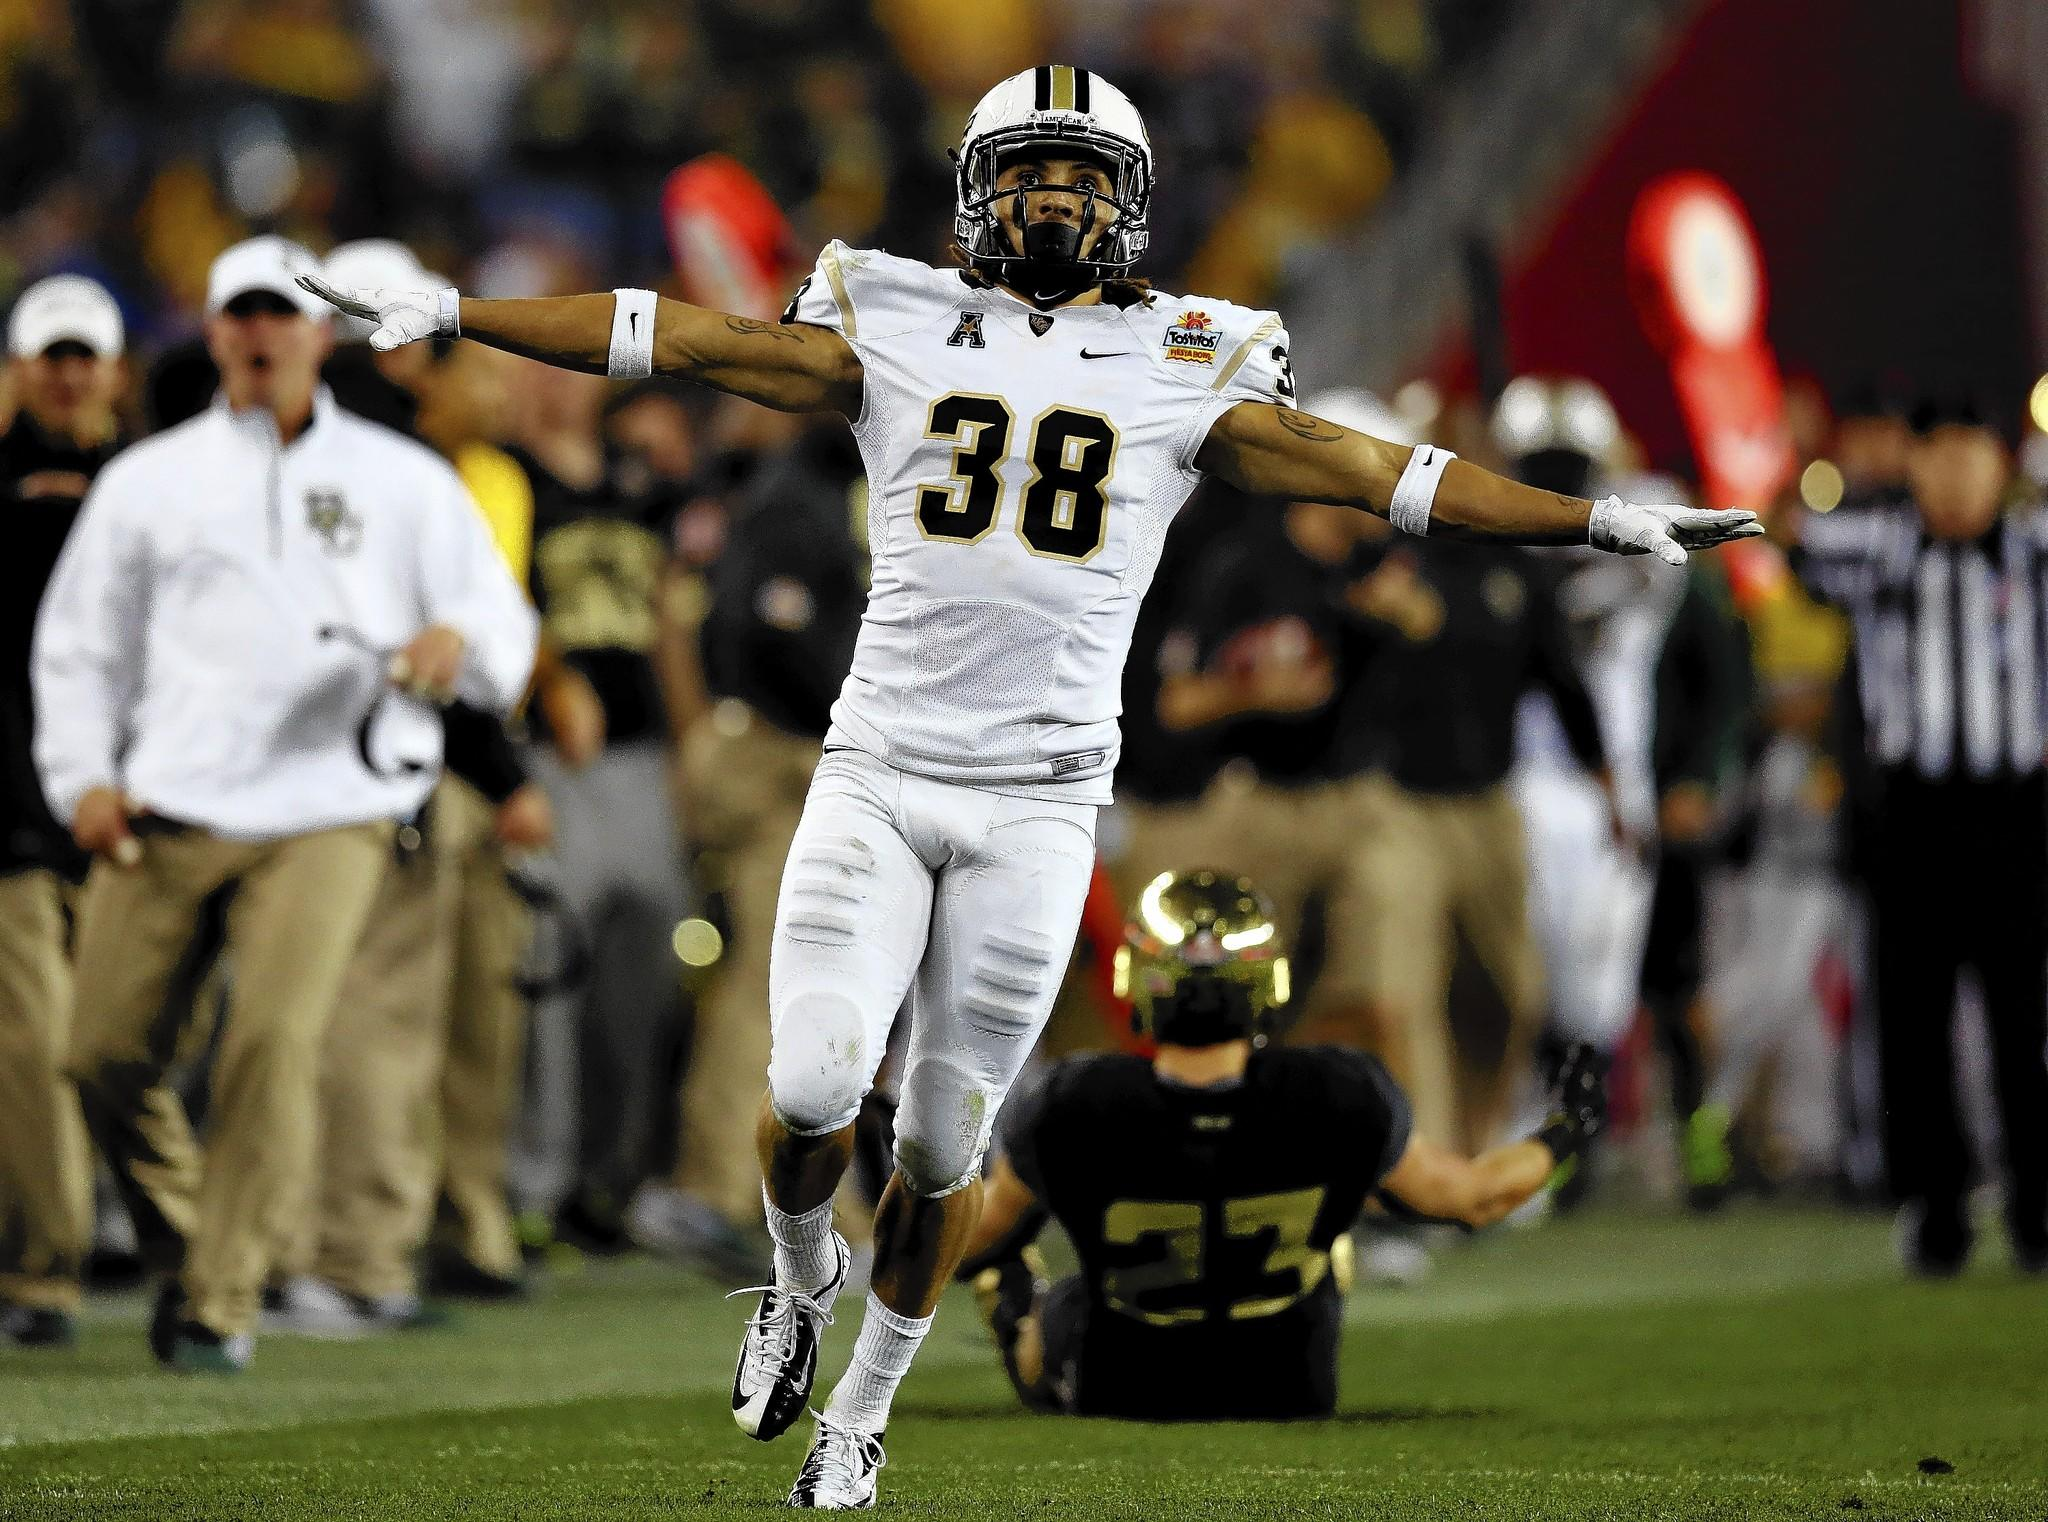 Defensive back Jordan Ozerities of the UCF Knights reacts after a broken up pass against the Baylor Bears during the Tostitos Fiesta Bowl at University of Phoenix Stadium on January 1, 2014 in Glendale, Arizona.